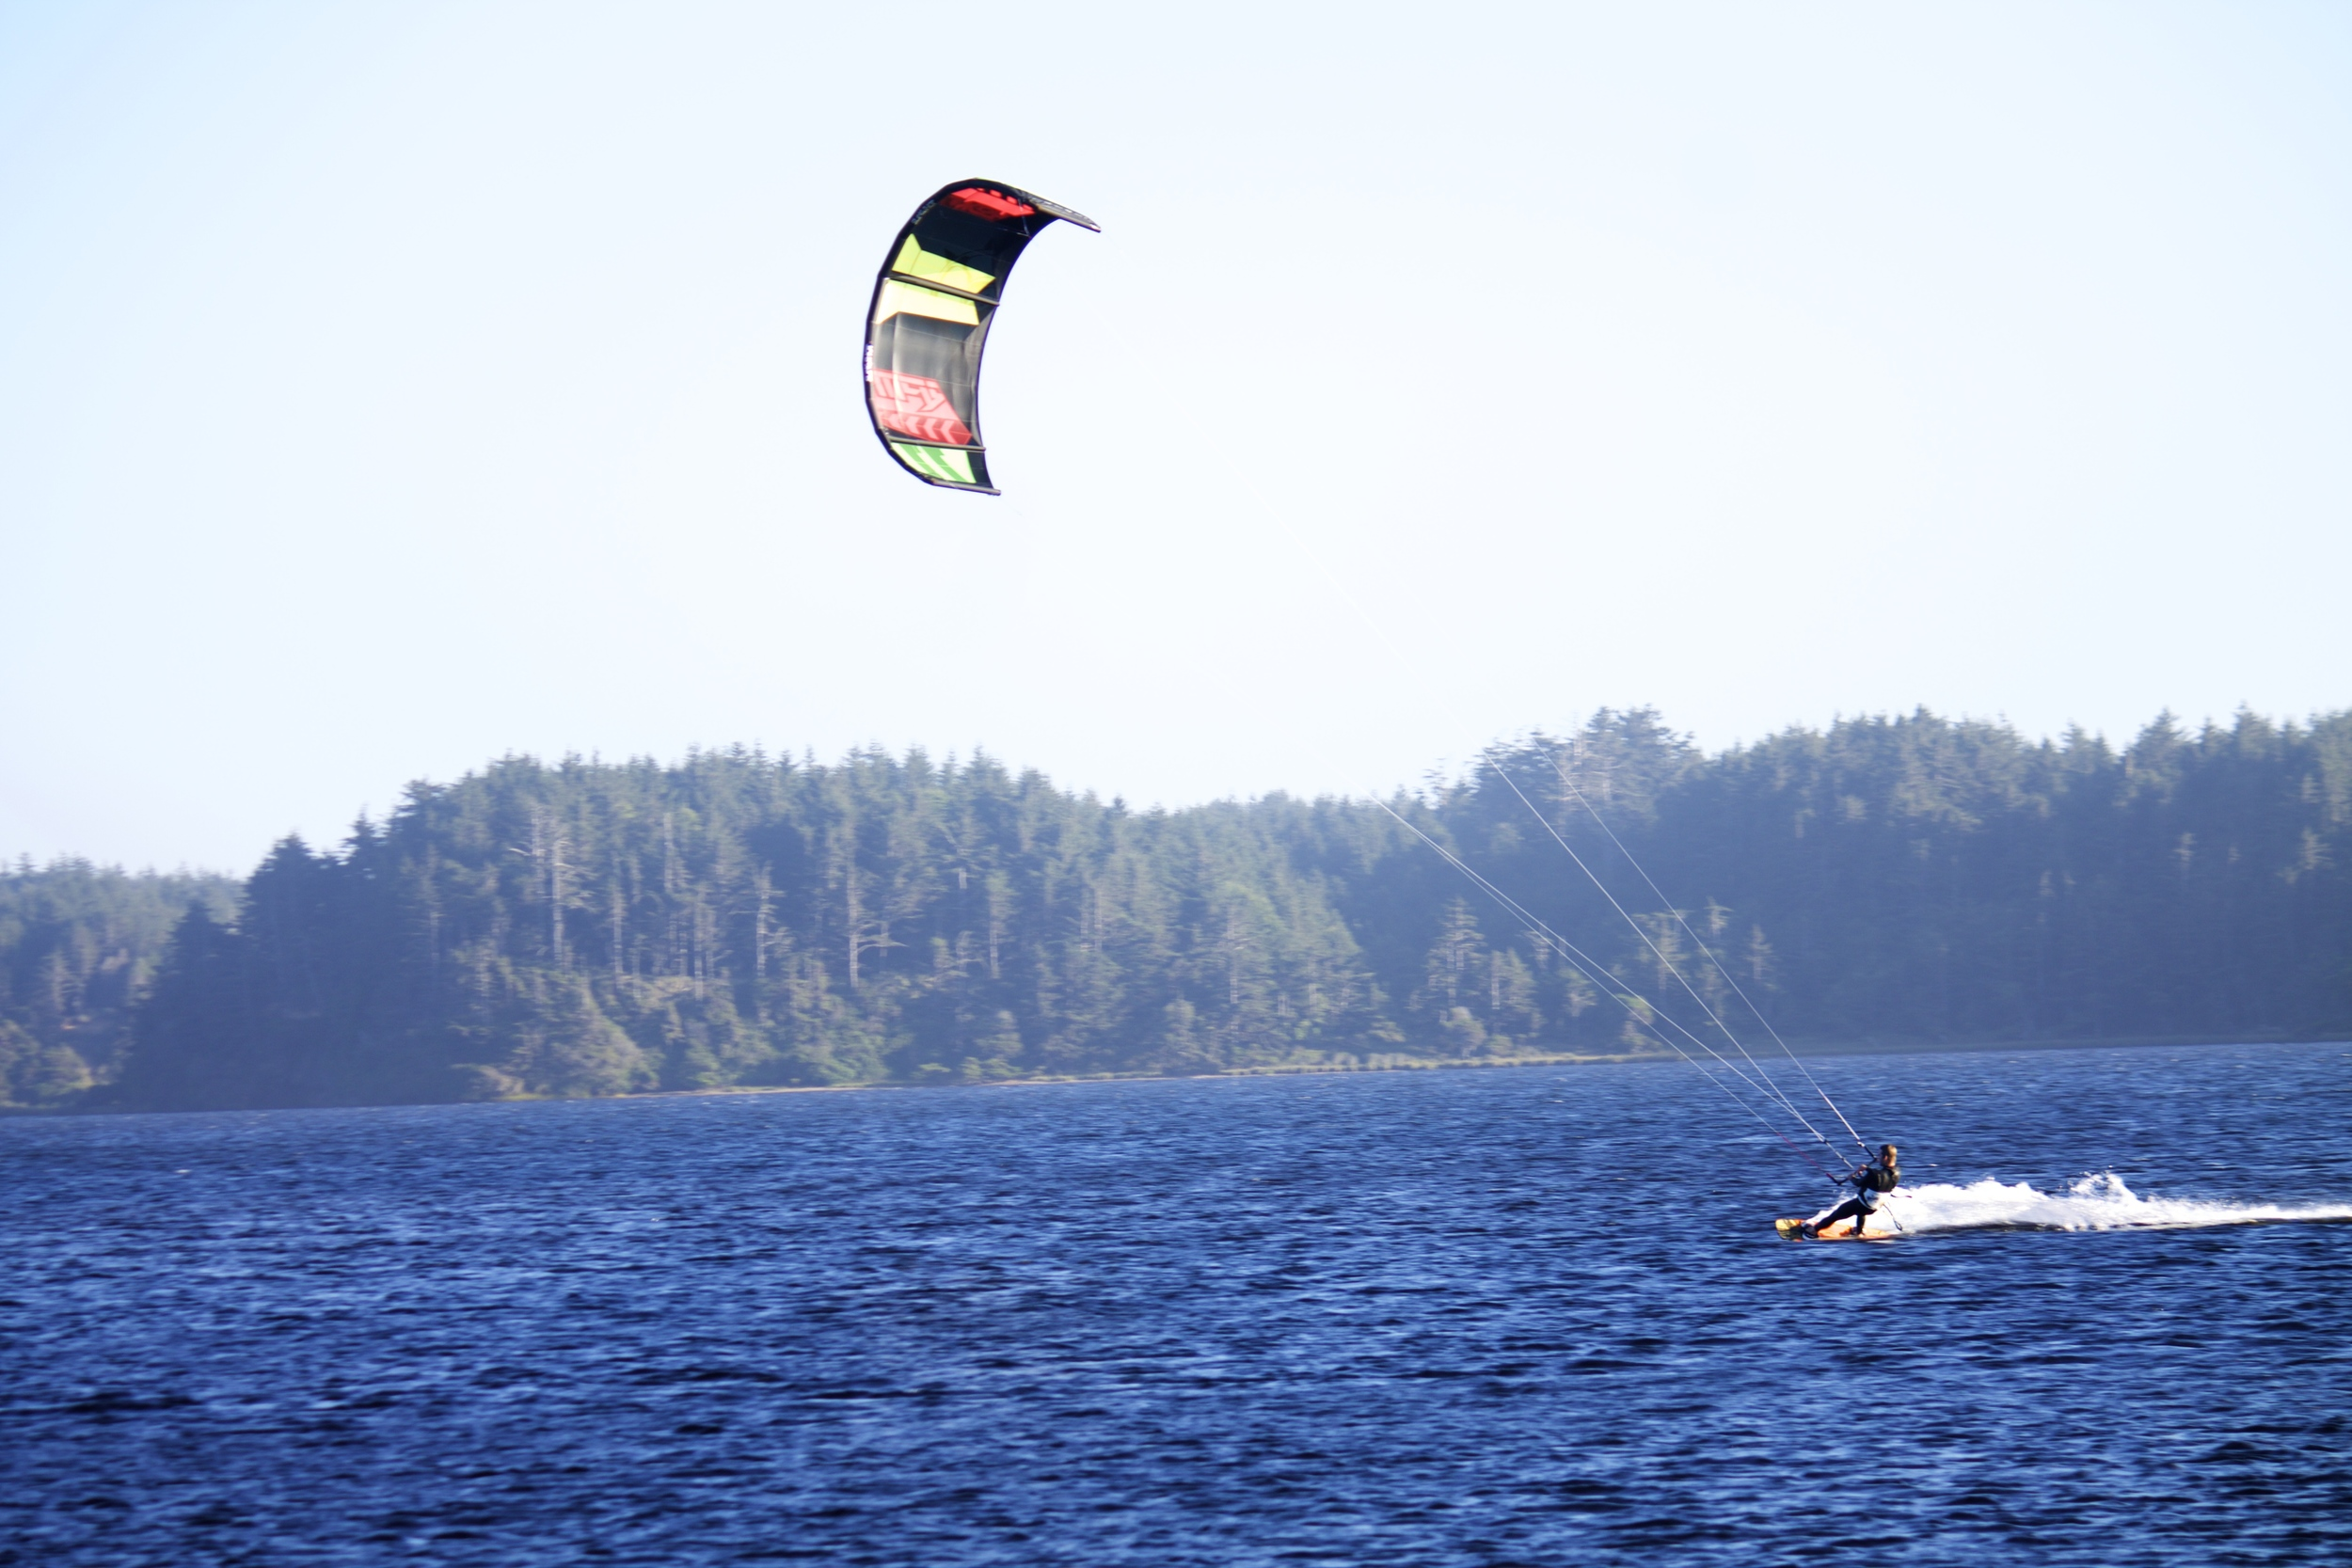 Kiting at Floras Lake